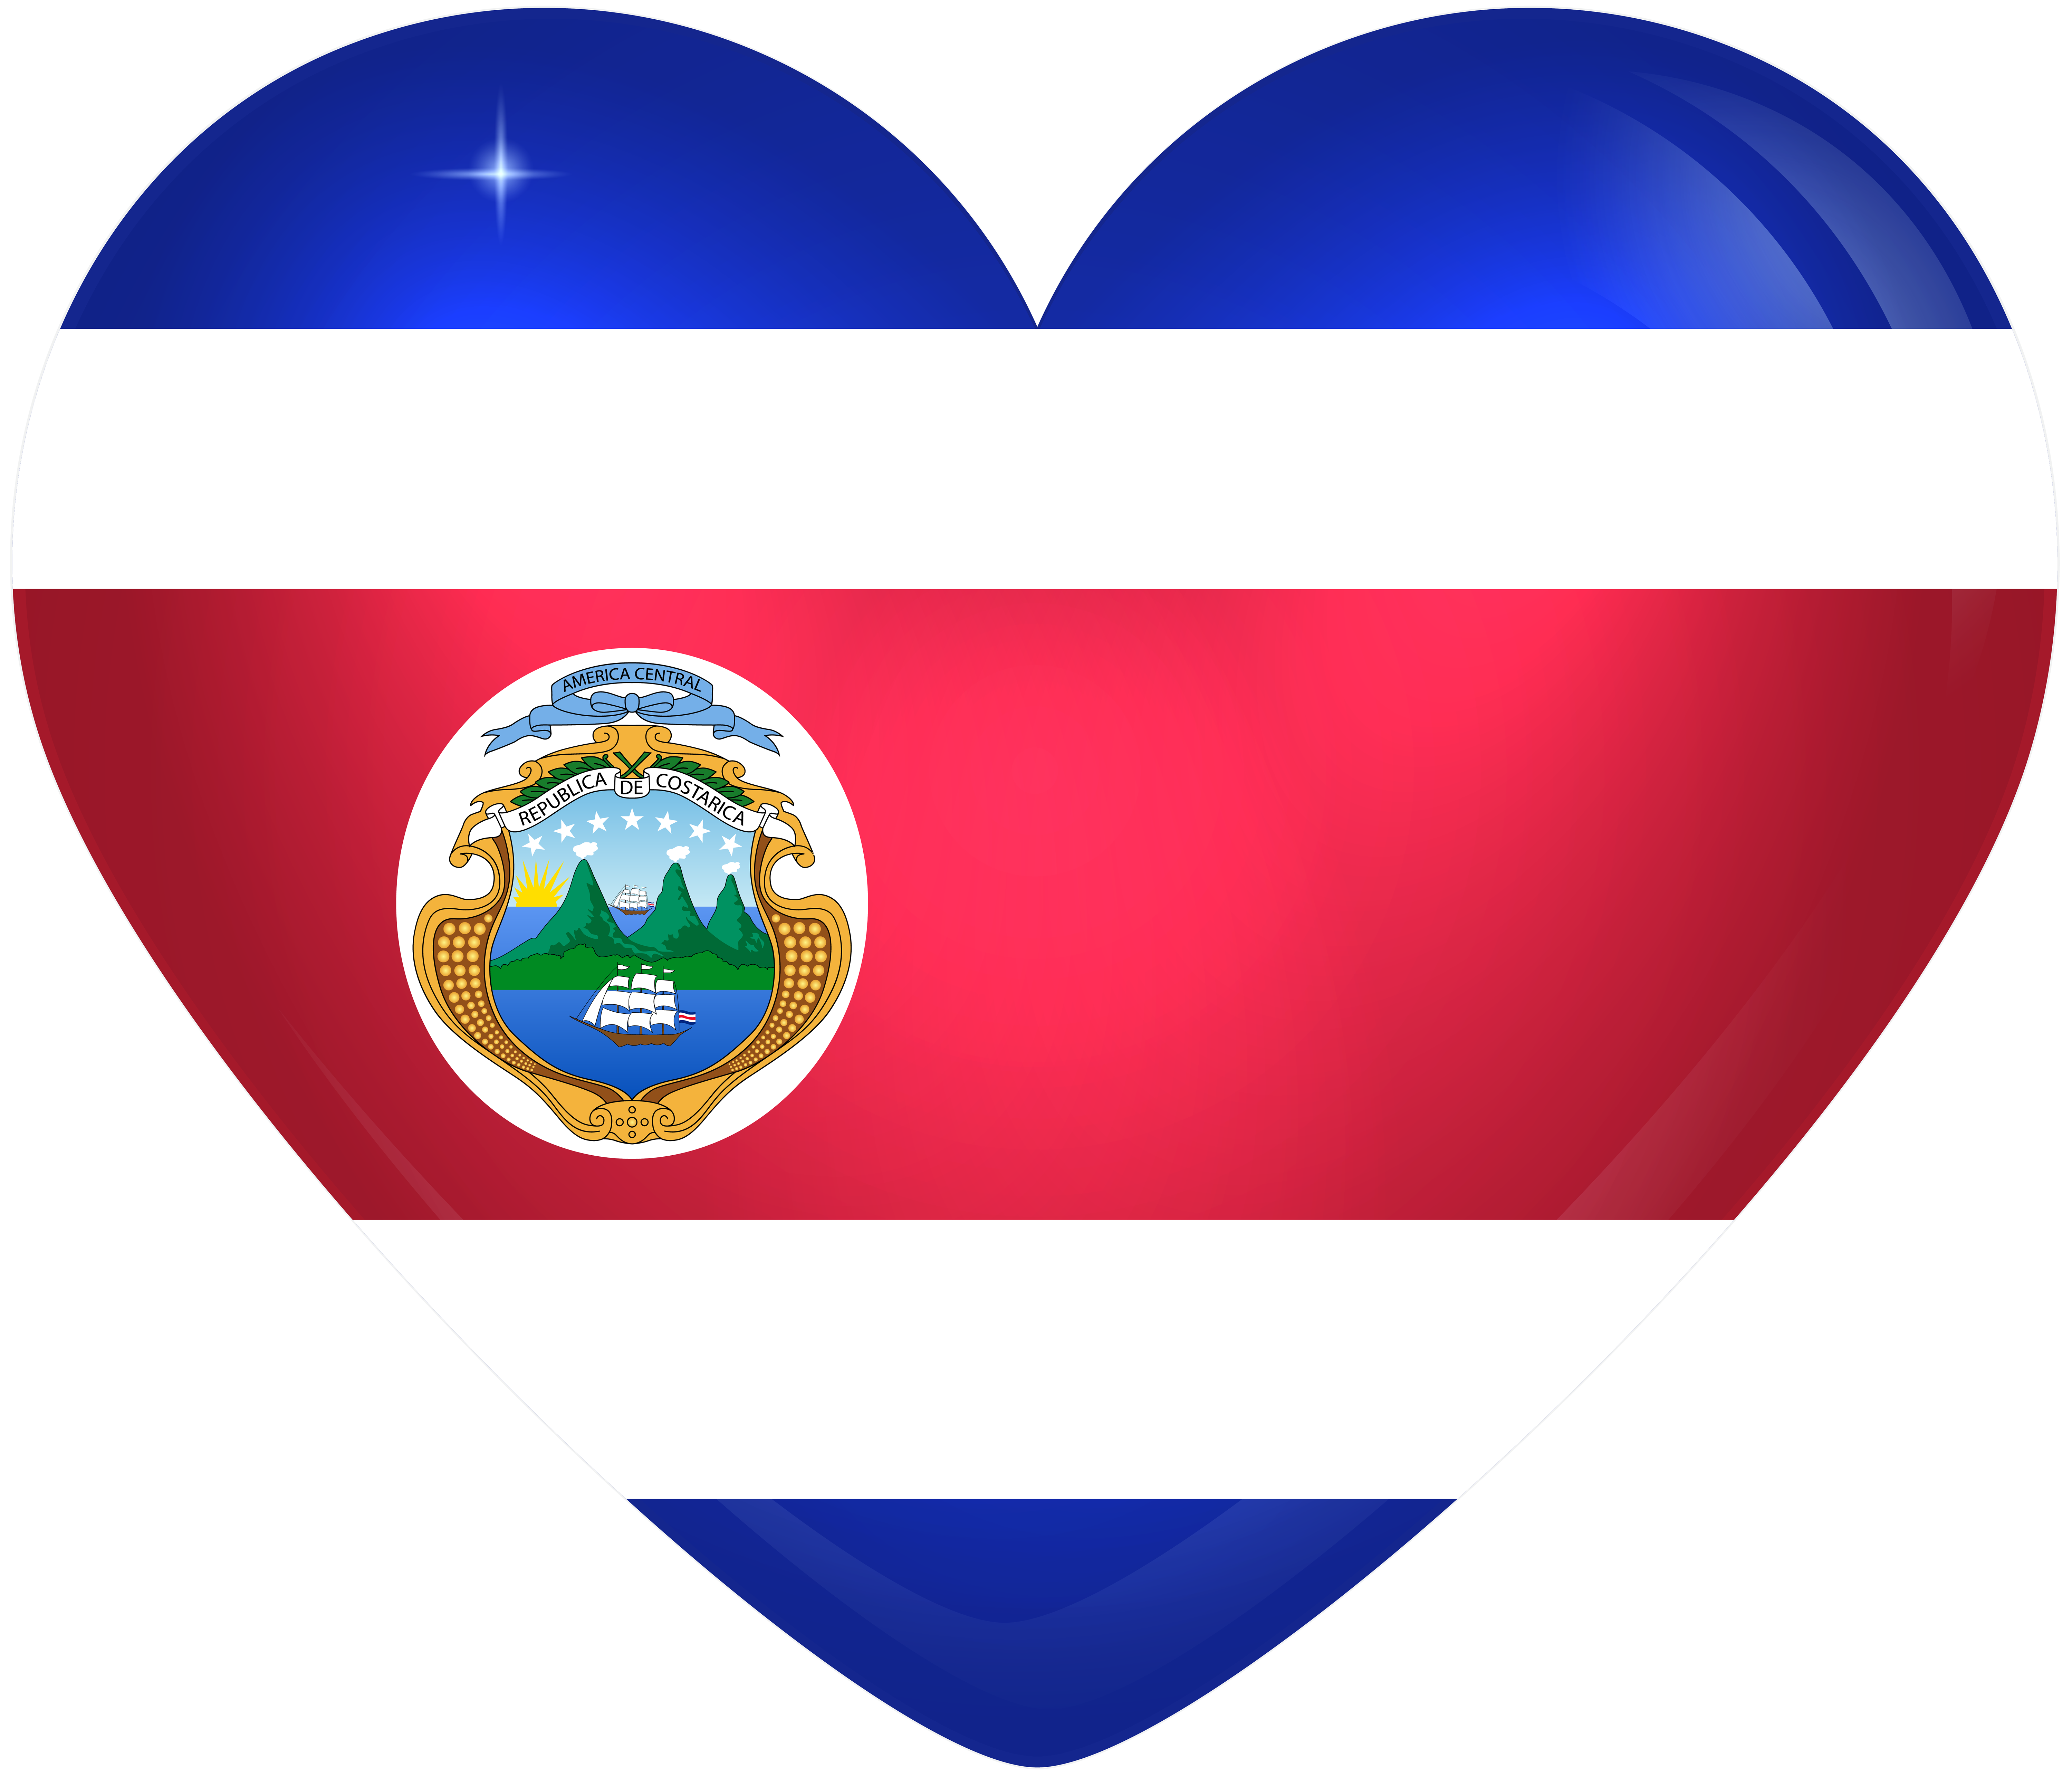 Costa Rica Png Free Costa Rica Png Transparent Images 85296 Pngio